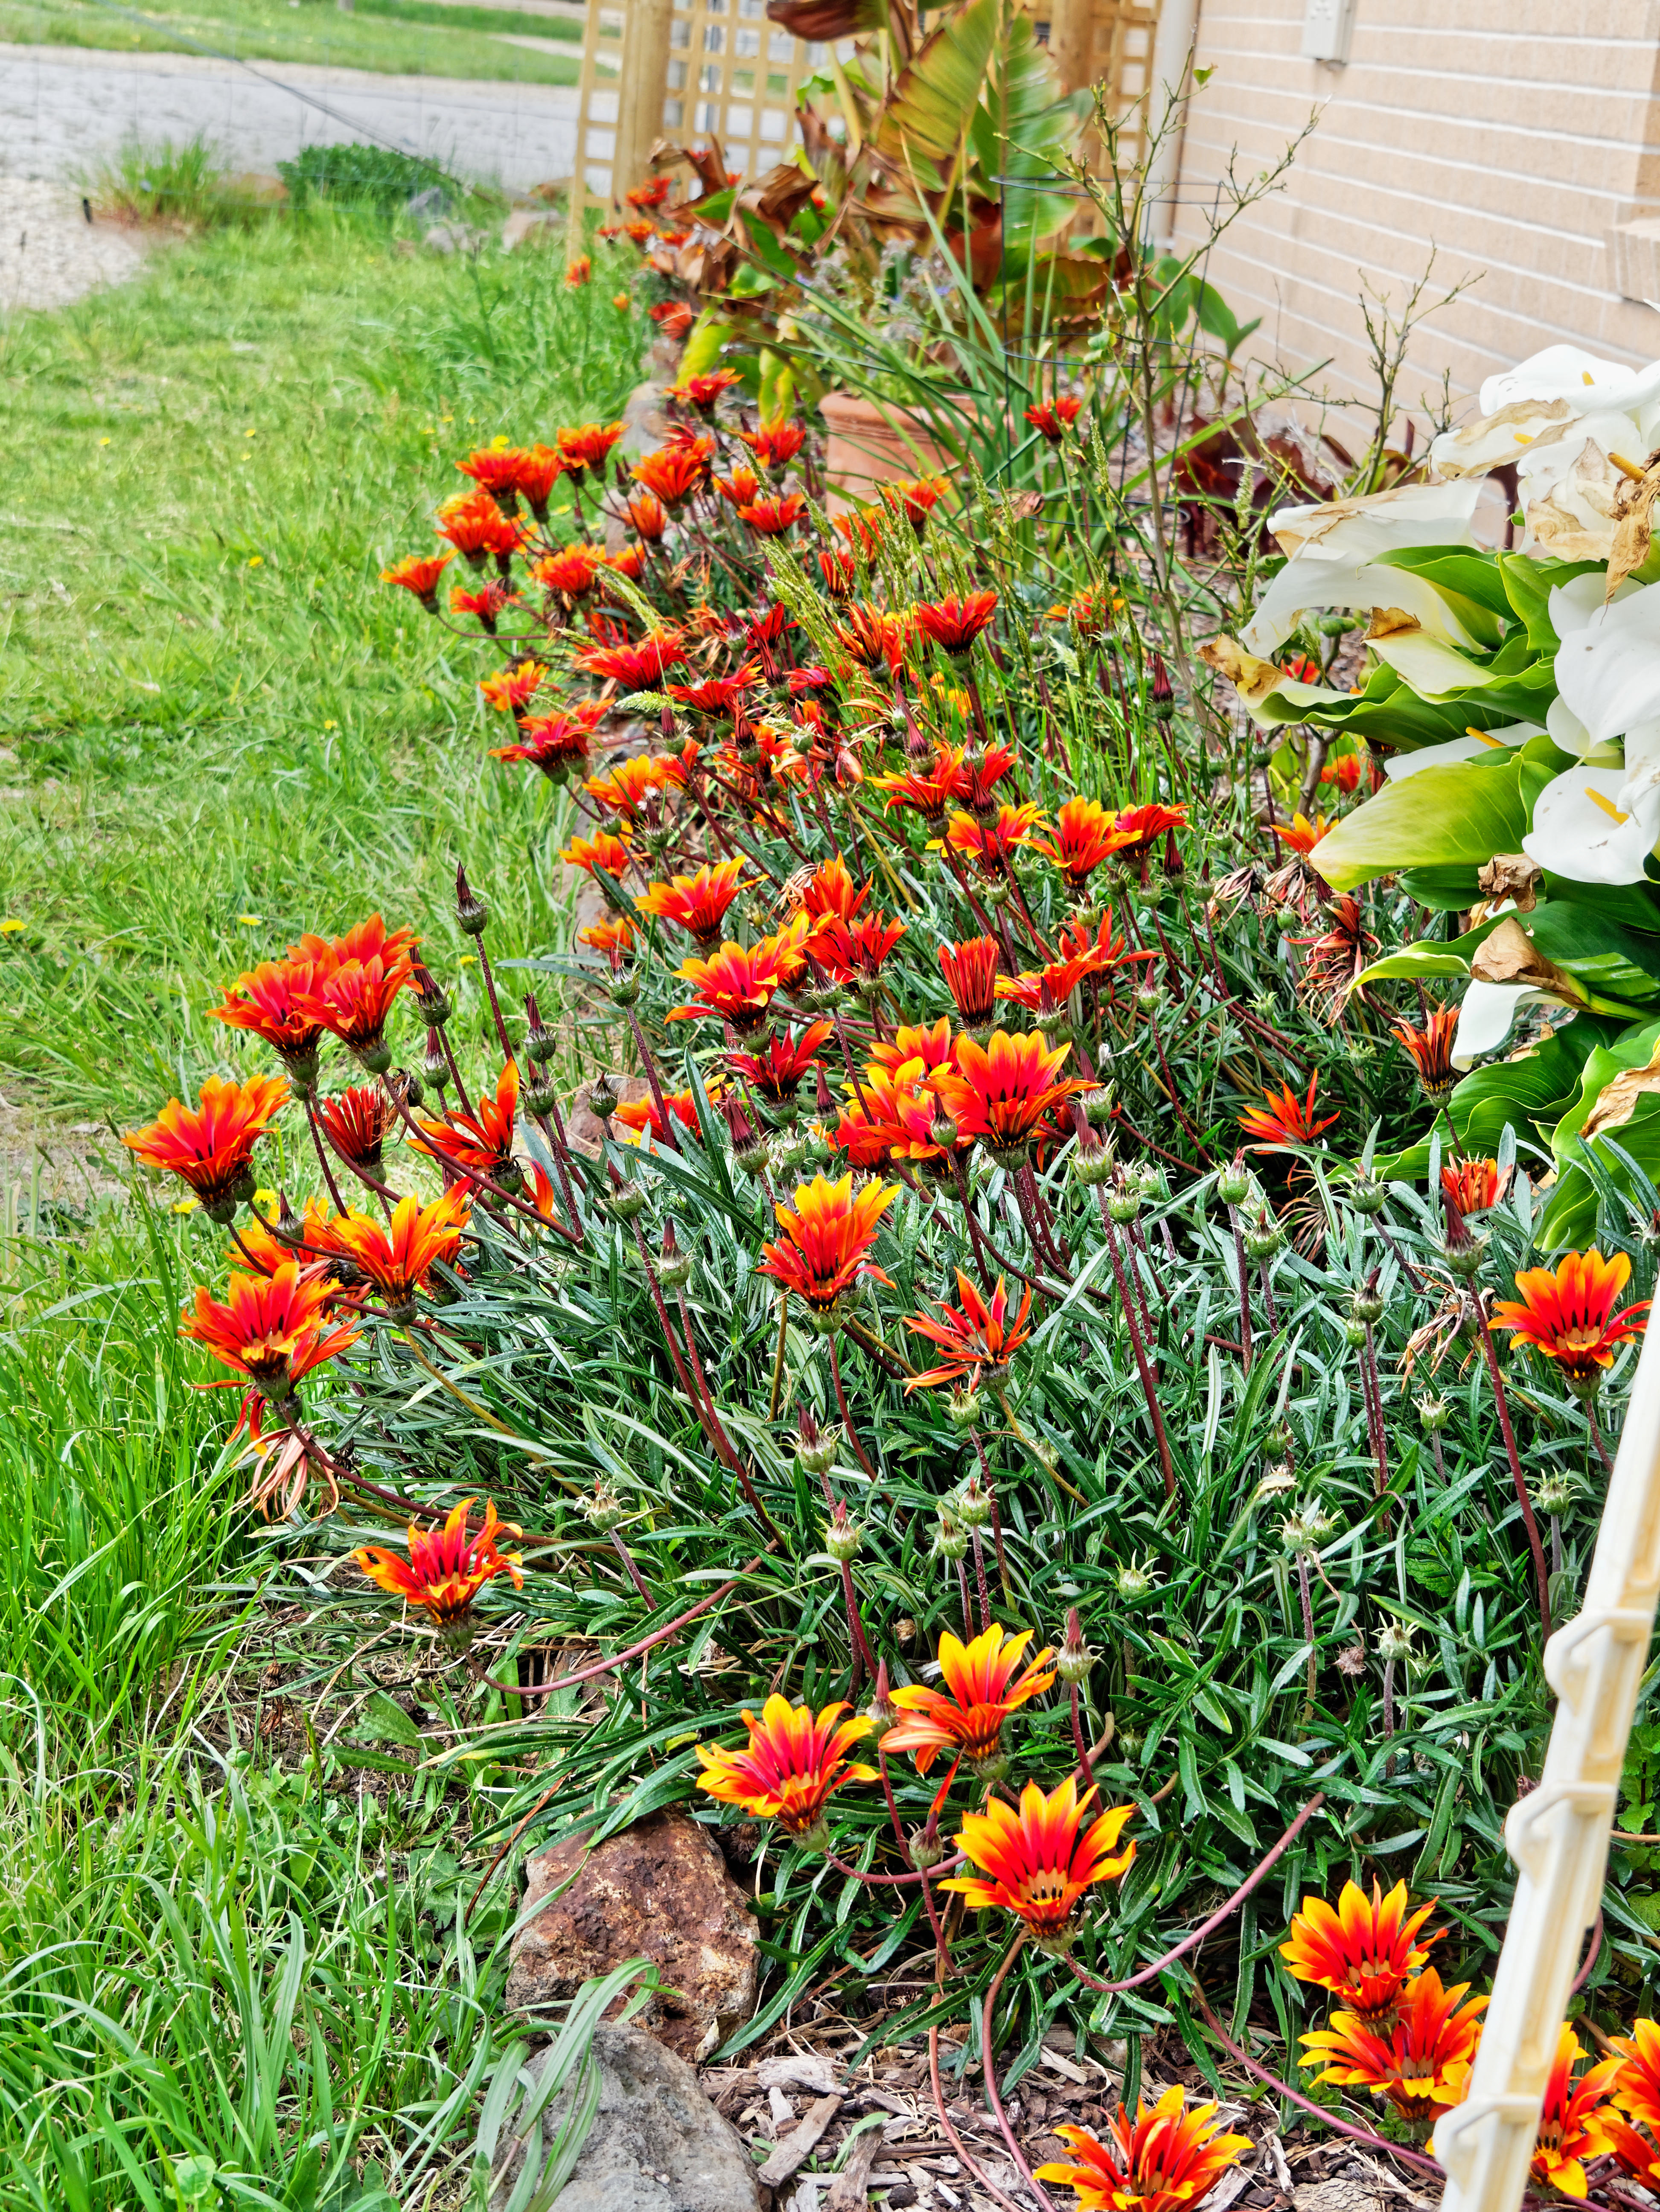 This should be Gazania-4.jpeg.  Is it missing?